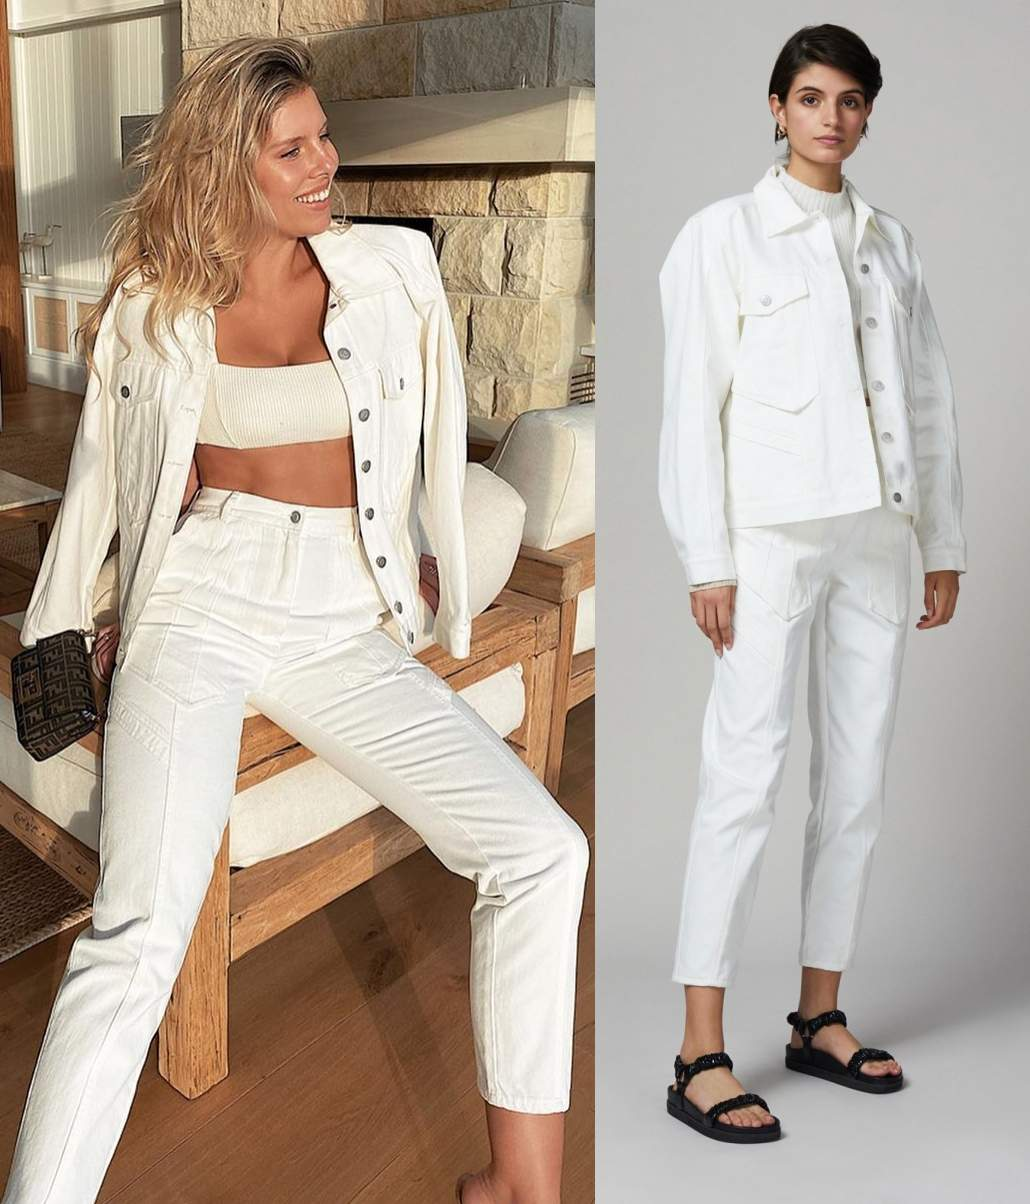 Natasha Oakley wearing a Oversized ivory Bec and Bridge denim jacket with a denim fabric, full sleeves, shirt collar and button front